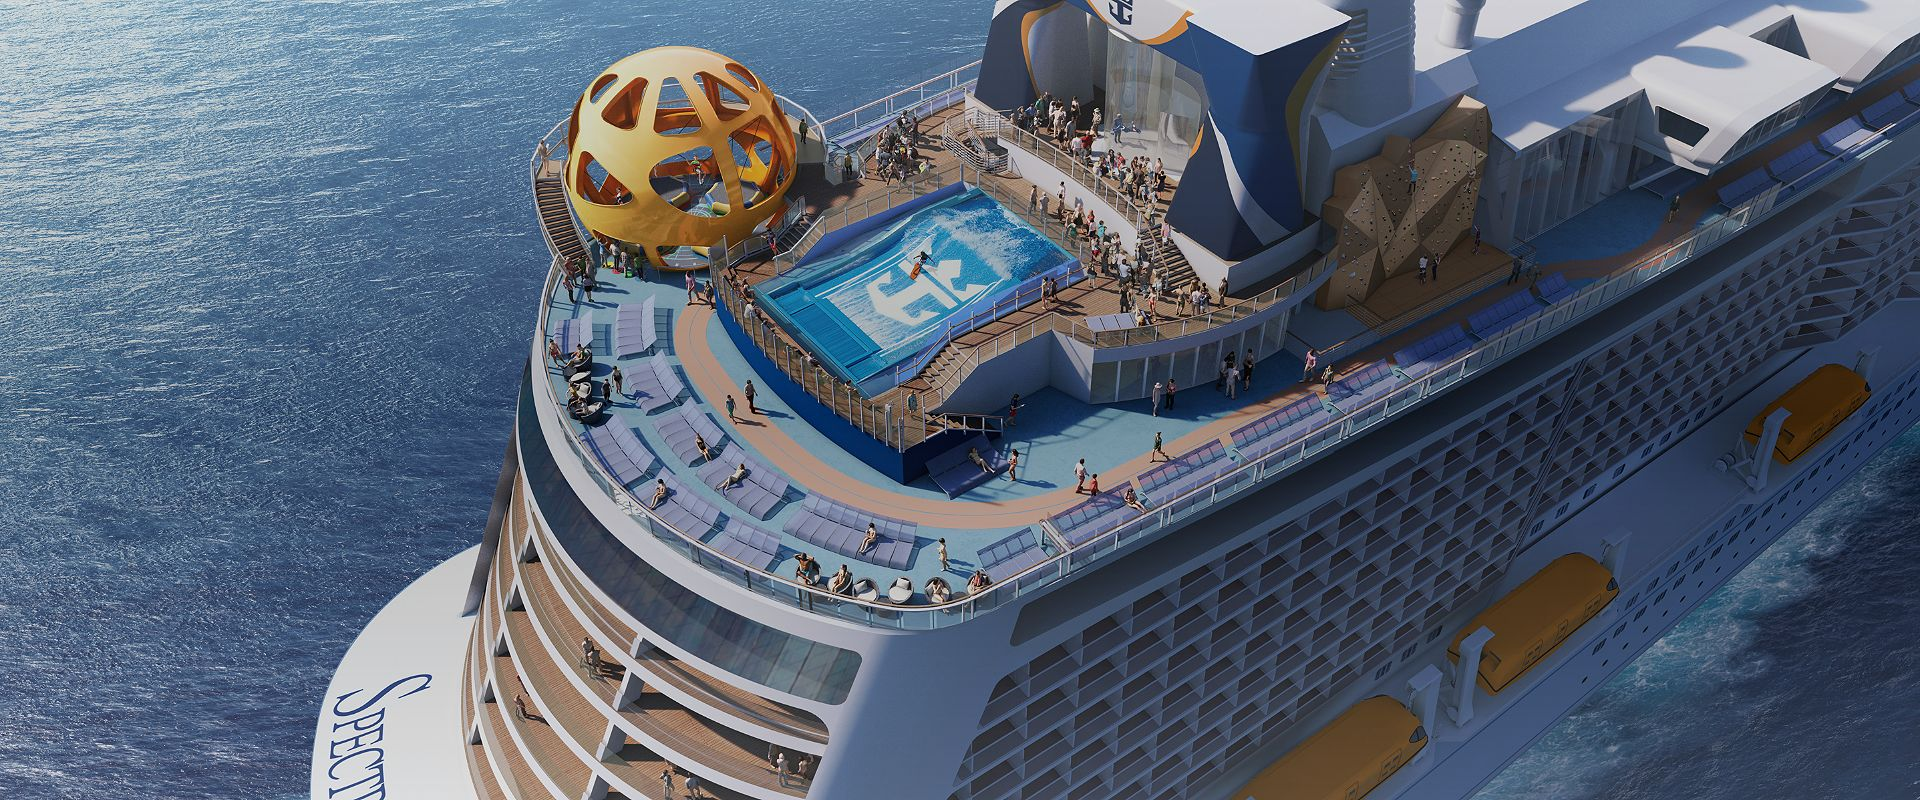 Royal Caribbean Reveals First Look At Spectrum Of The Seas Royal Caribbean Blog